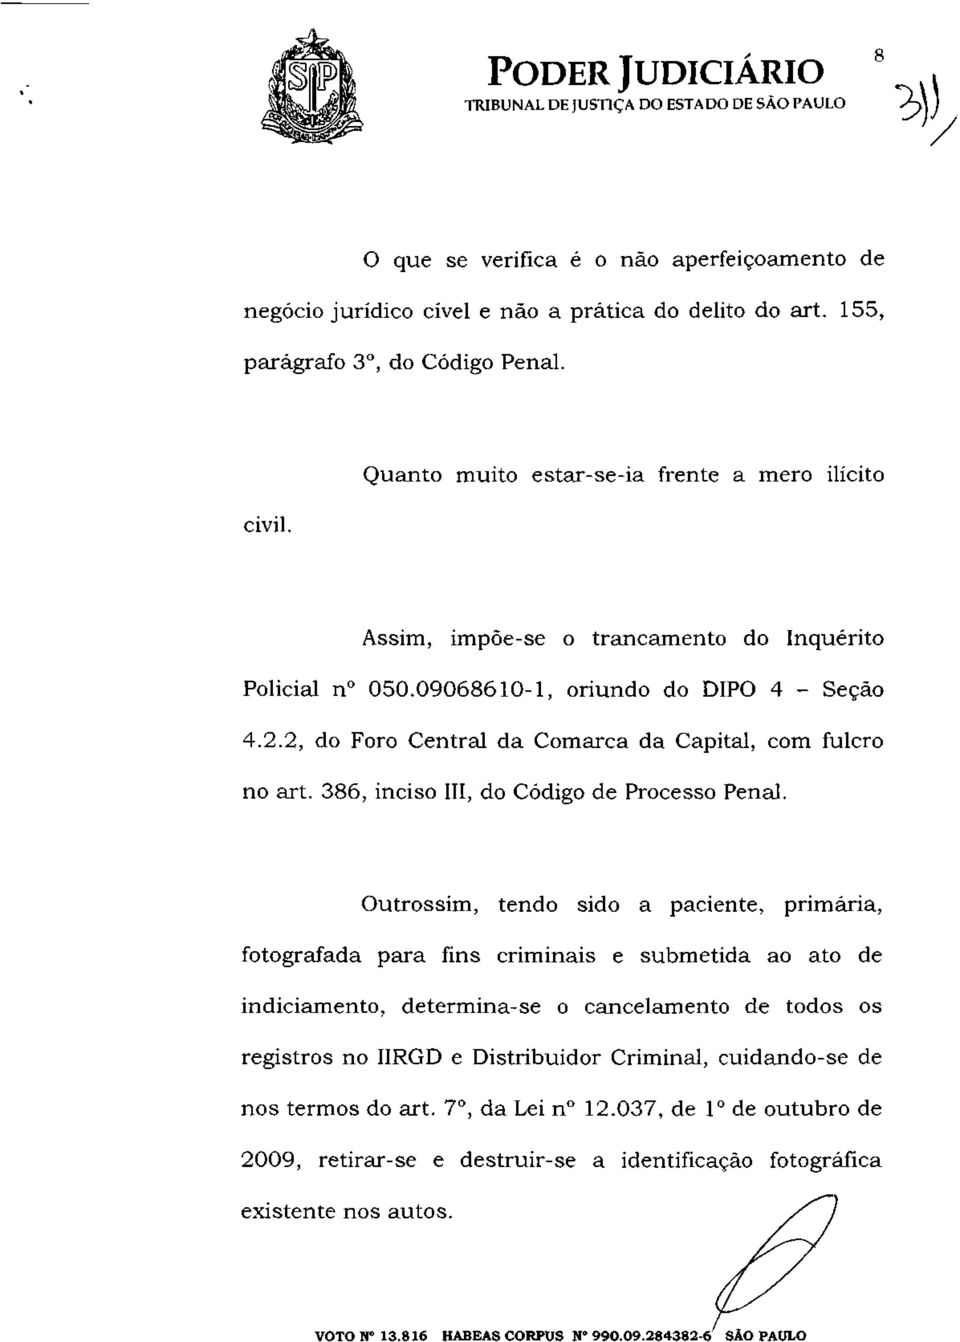 2, do Foro Central da Comarca da Capital, com fulcro no art. 386, inciso III, do Código de Processo Penal.